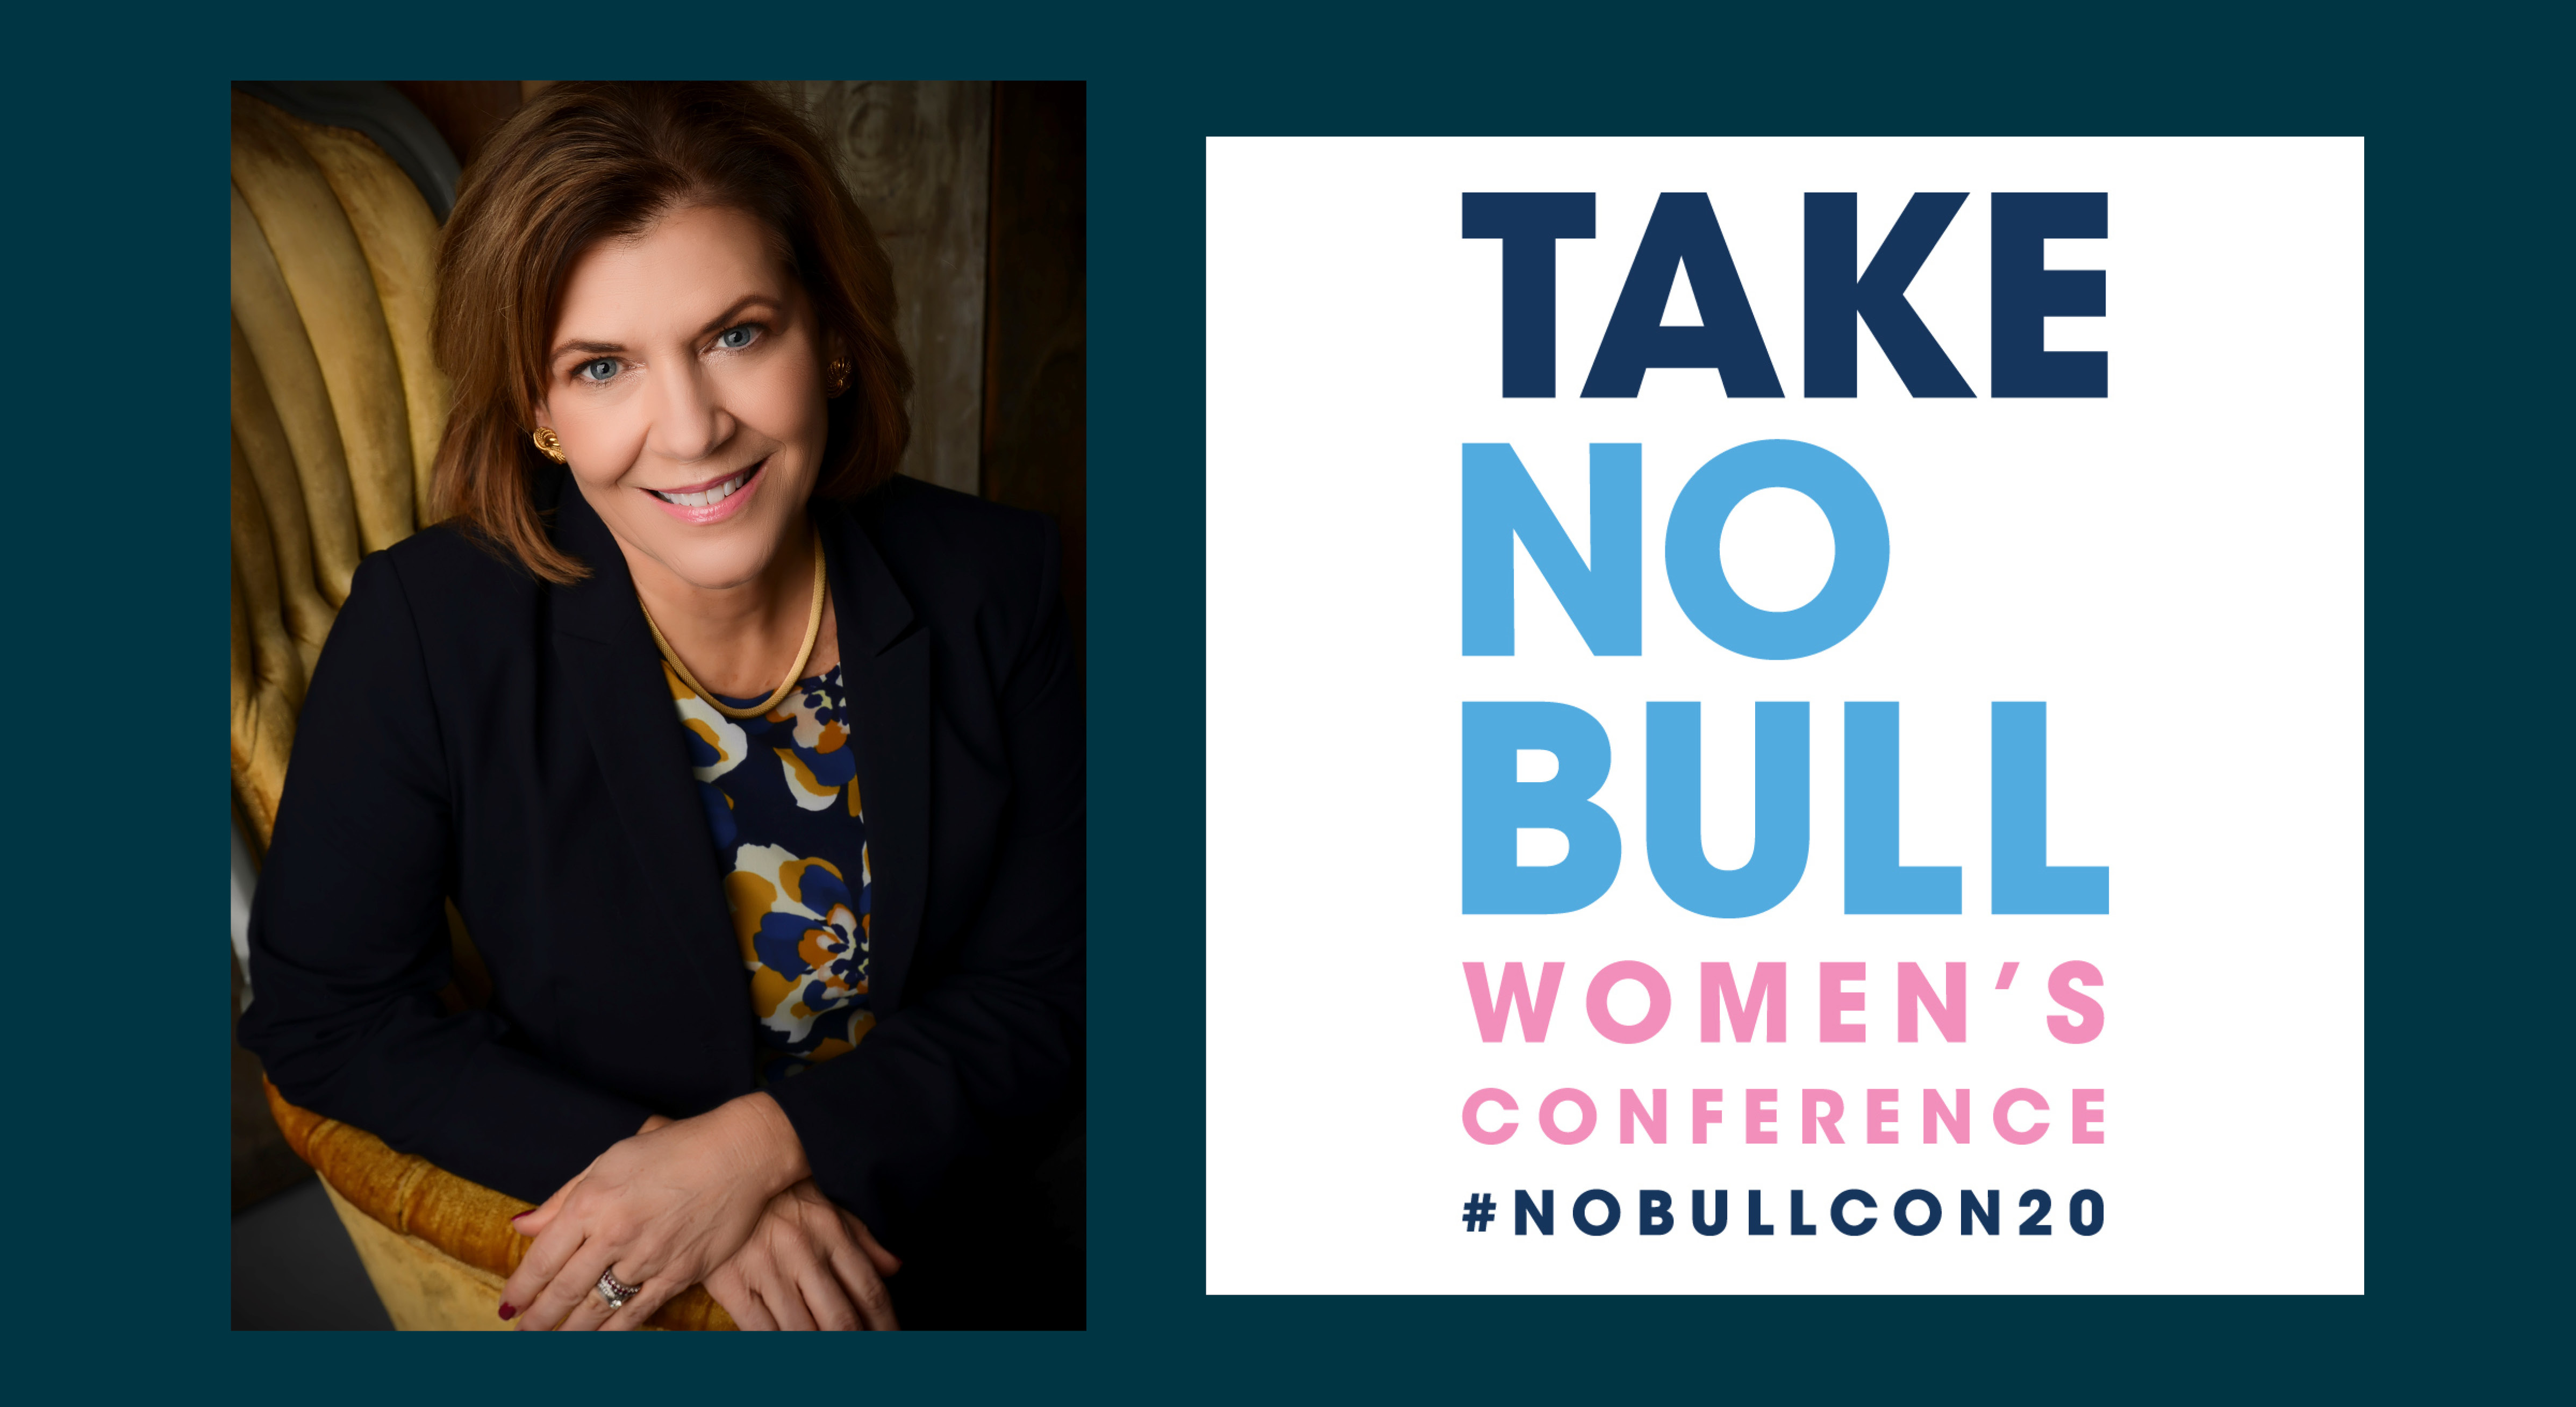 Lee Anne Nance to speak at 4th Annual Take No Bull Women's Conference